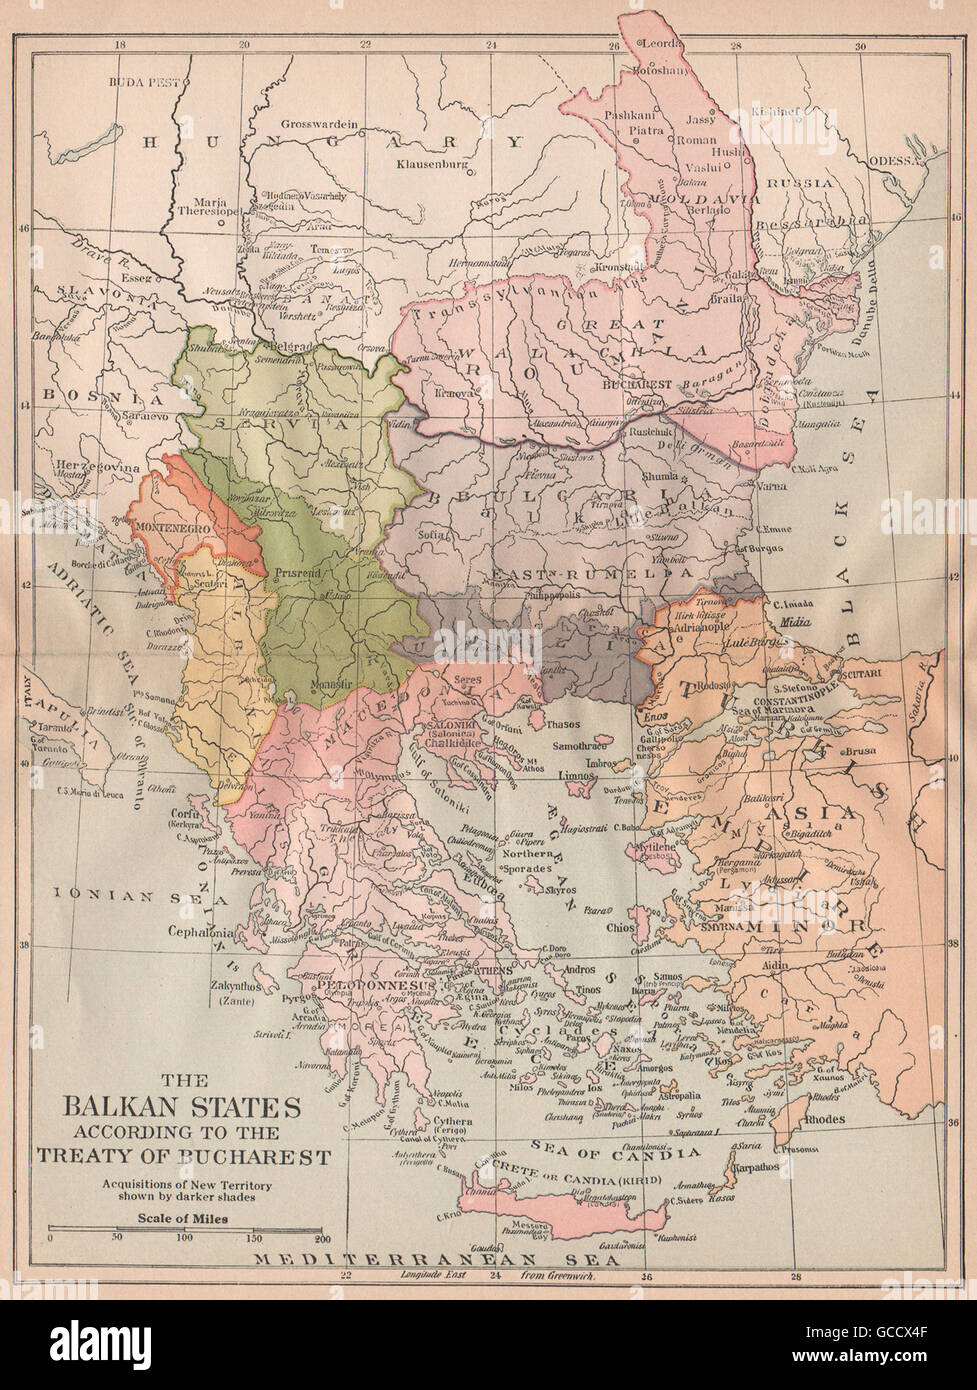 TREATY OF BUCHAREST 1913. Balkan States. Territorial modifications, 1917 map - Stock Image